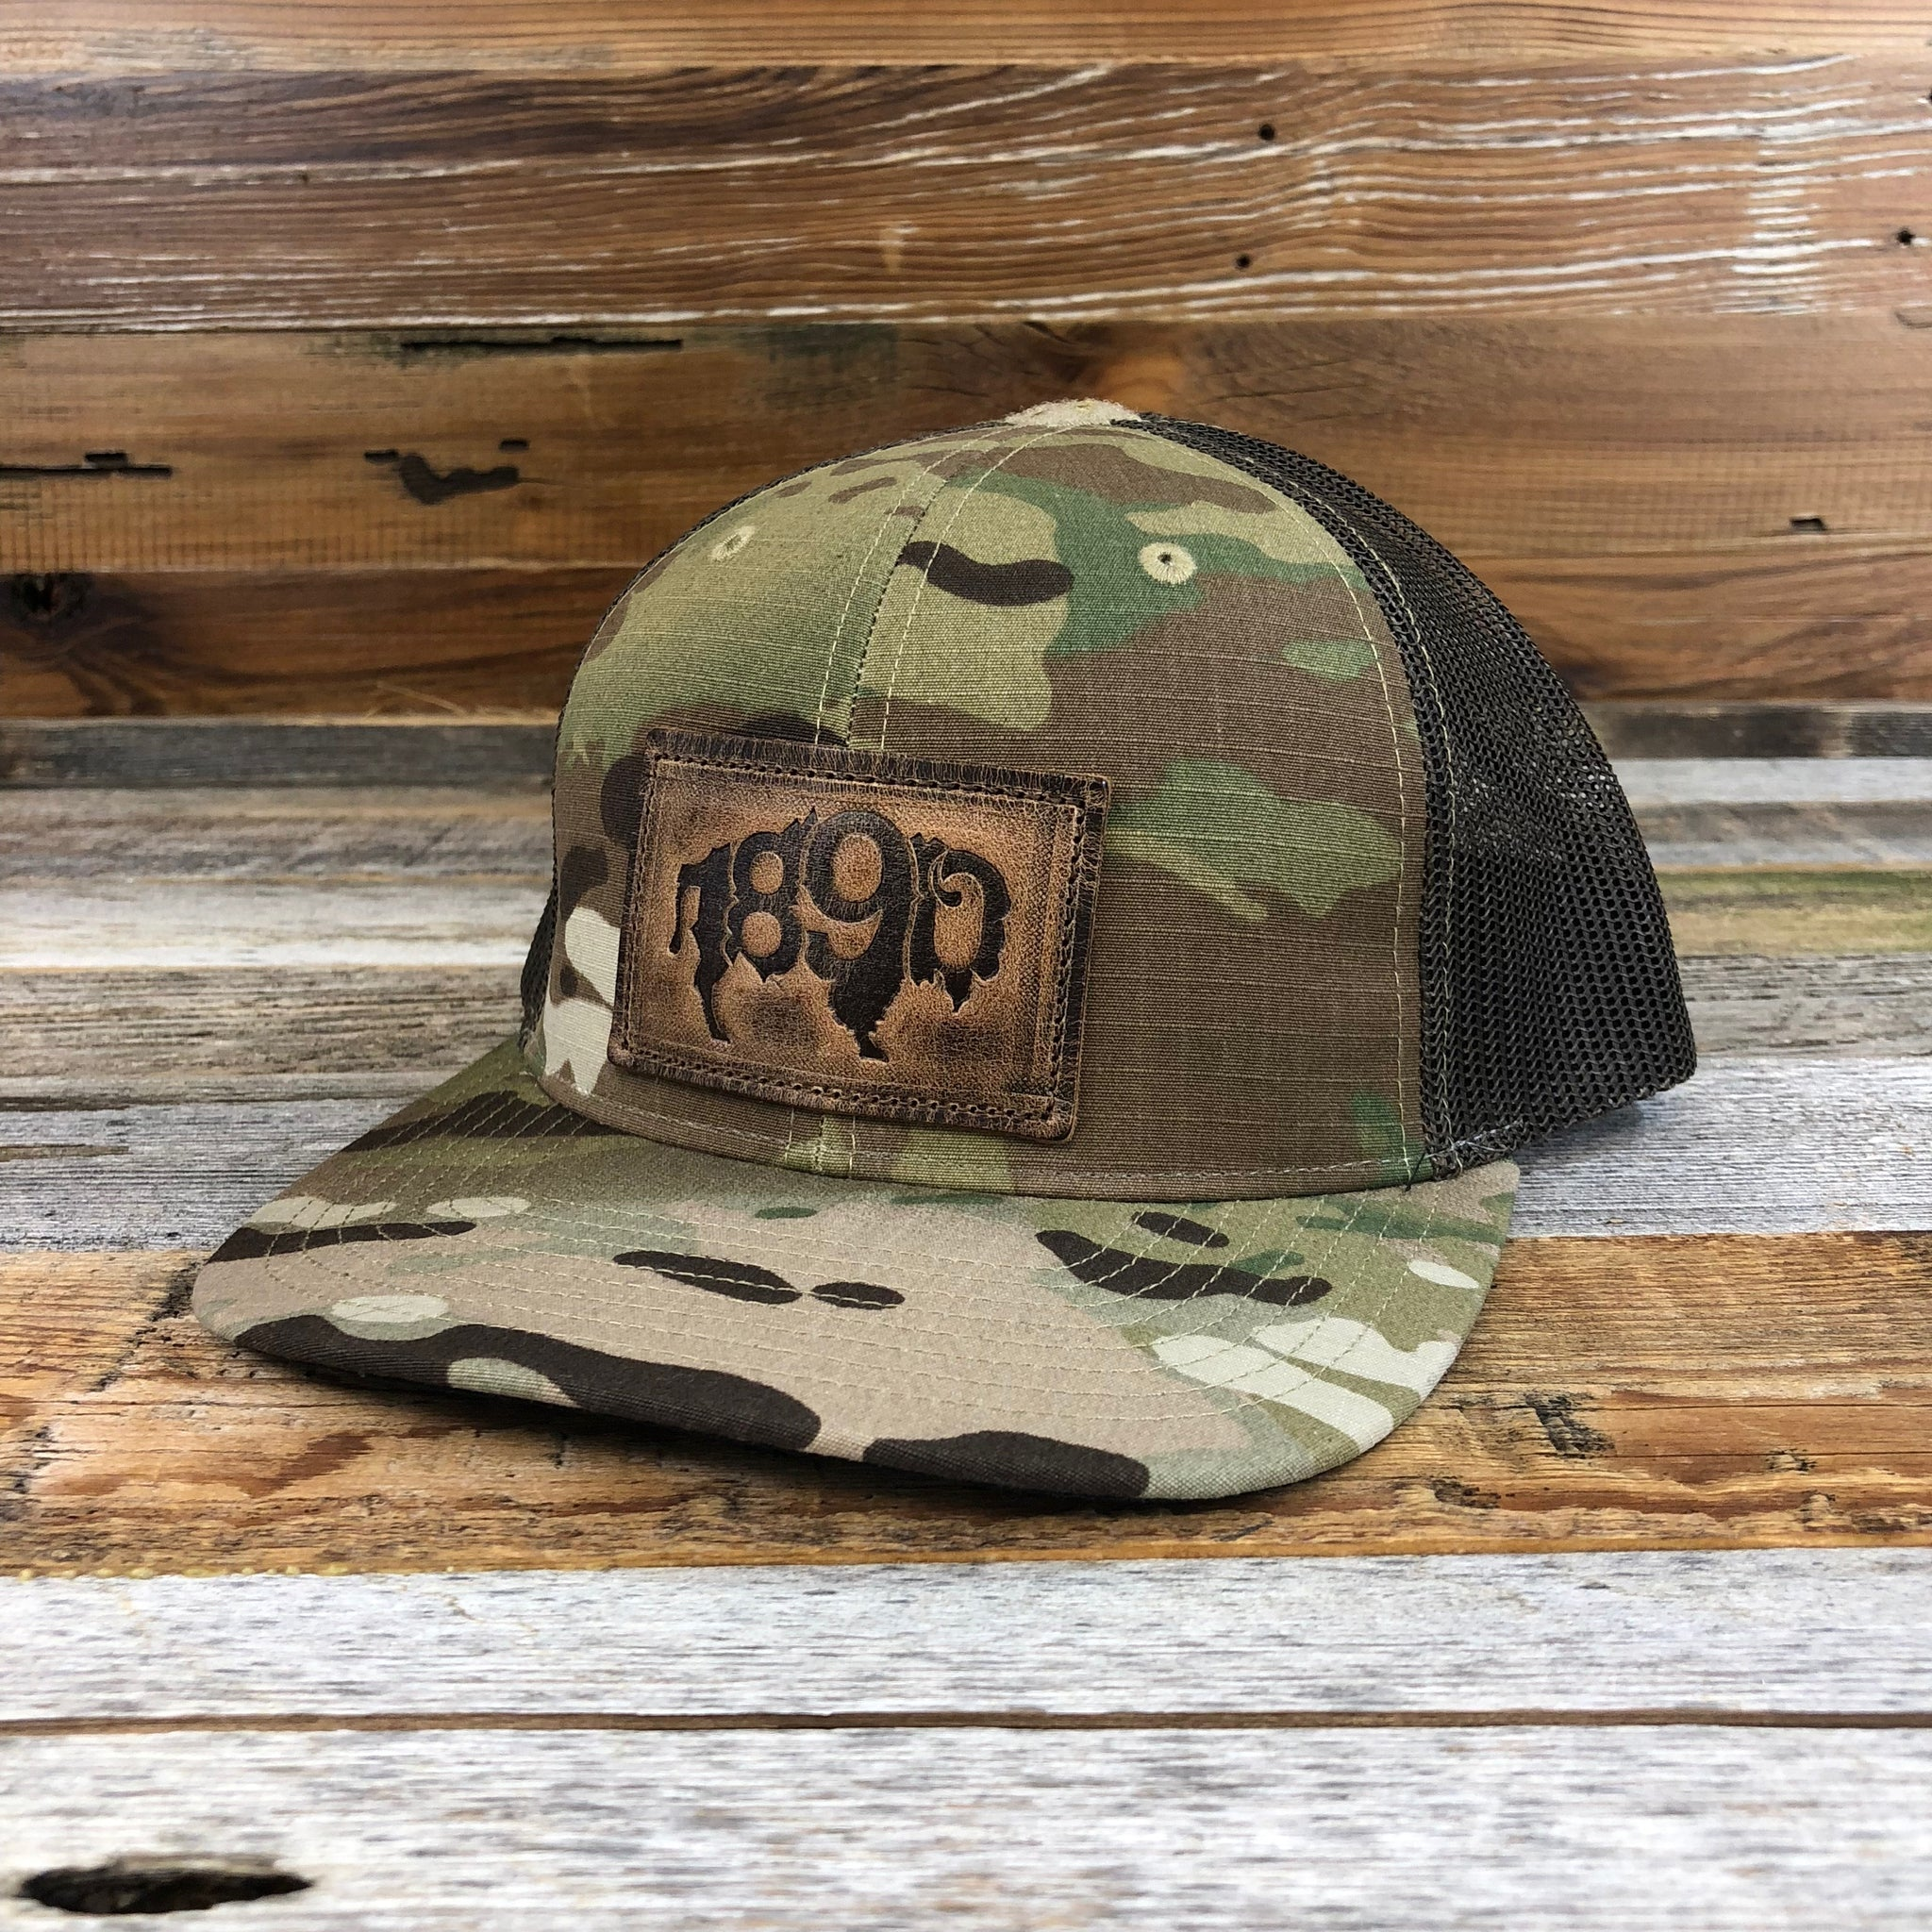 1890 Leather Buffalo Patch Snapback Hat- Camo